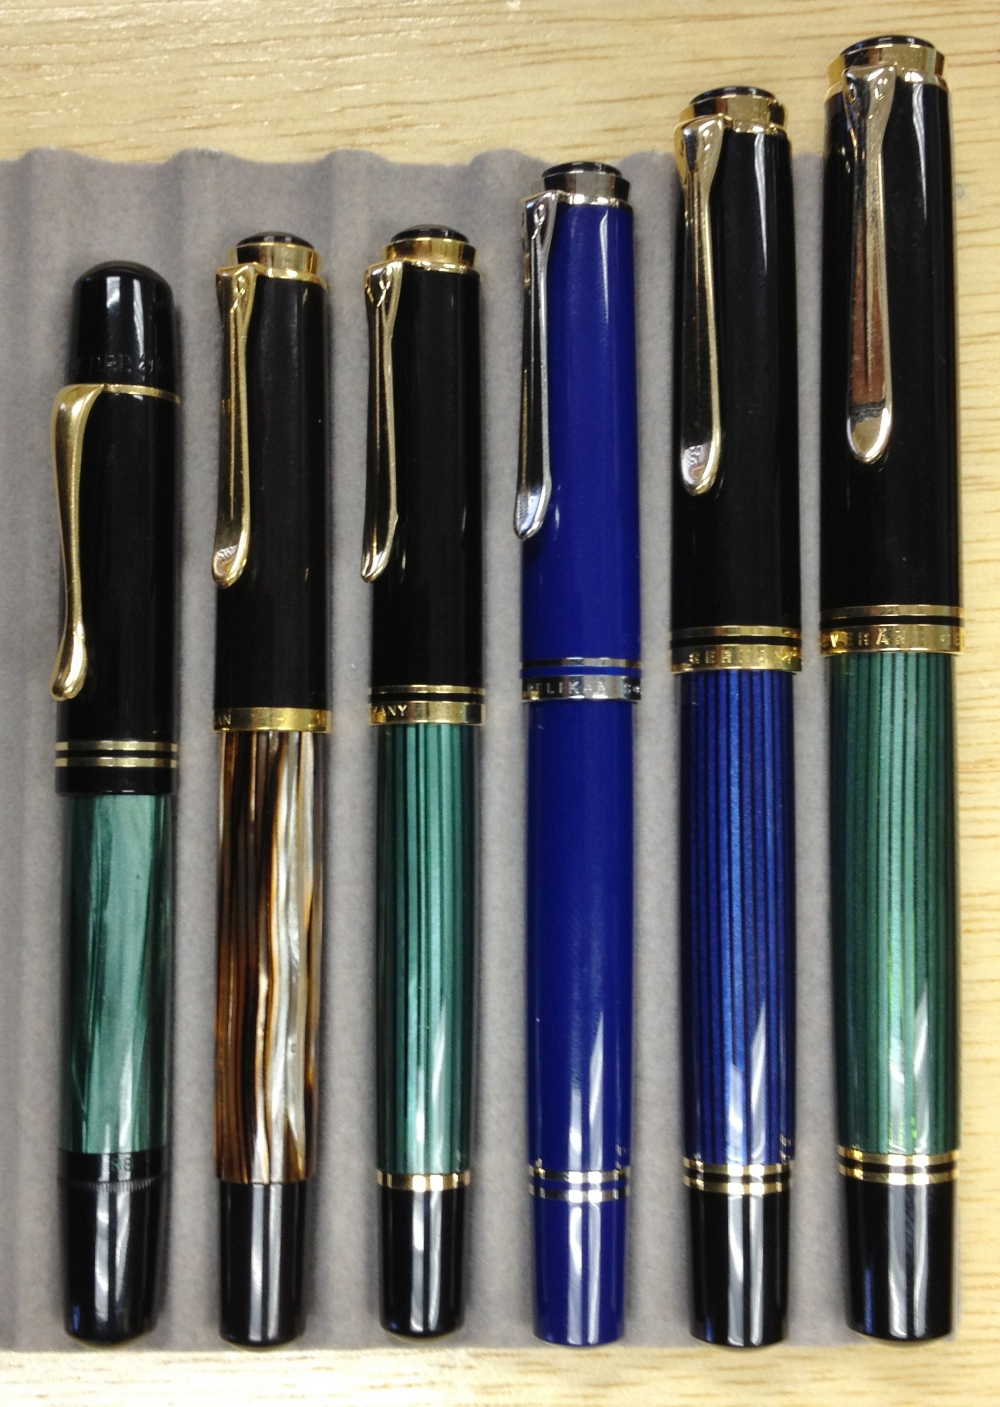 Small Ground Fountain Pelikan 100 Or 100N And M800 - Pelikan - The Fountain Pen Network